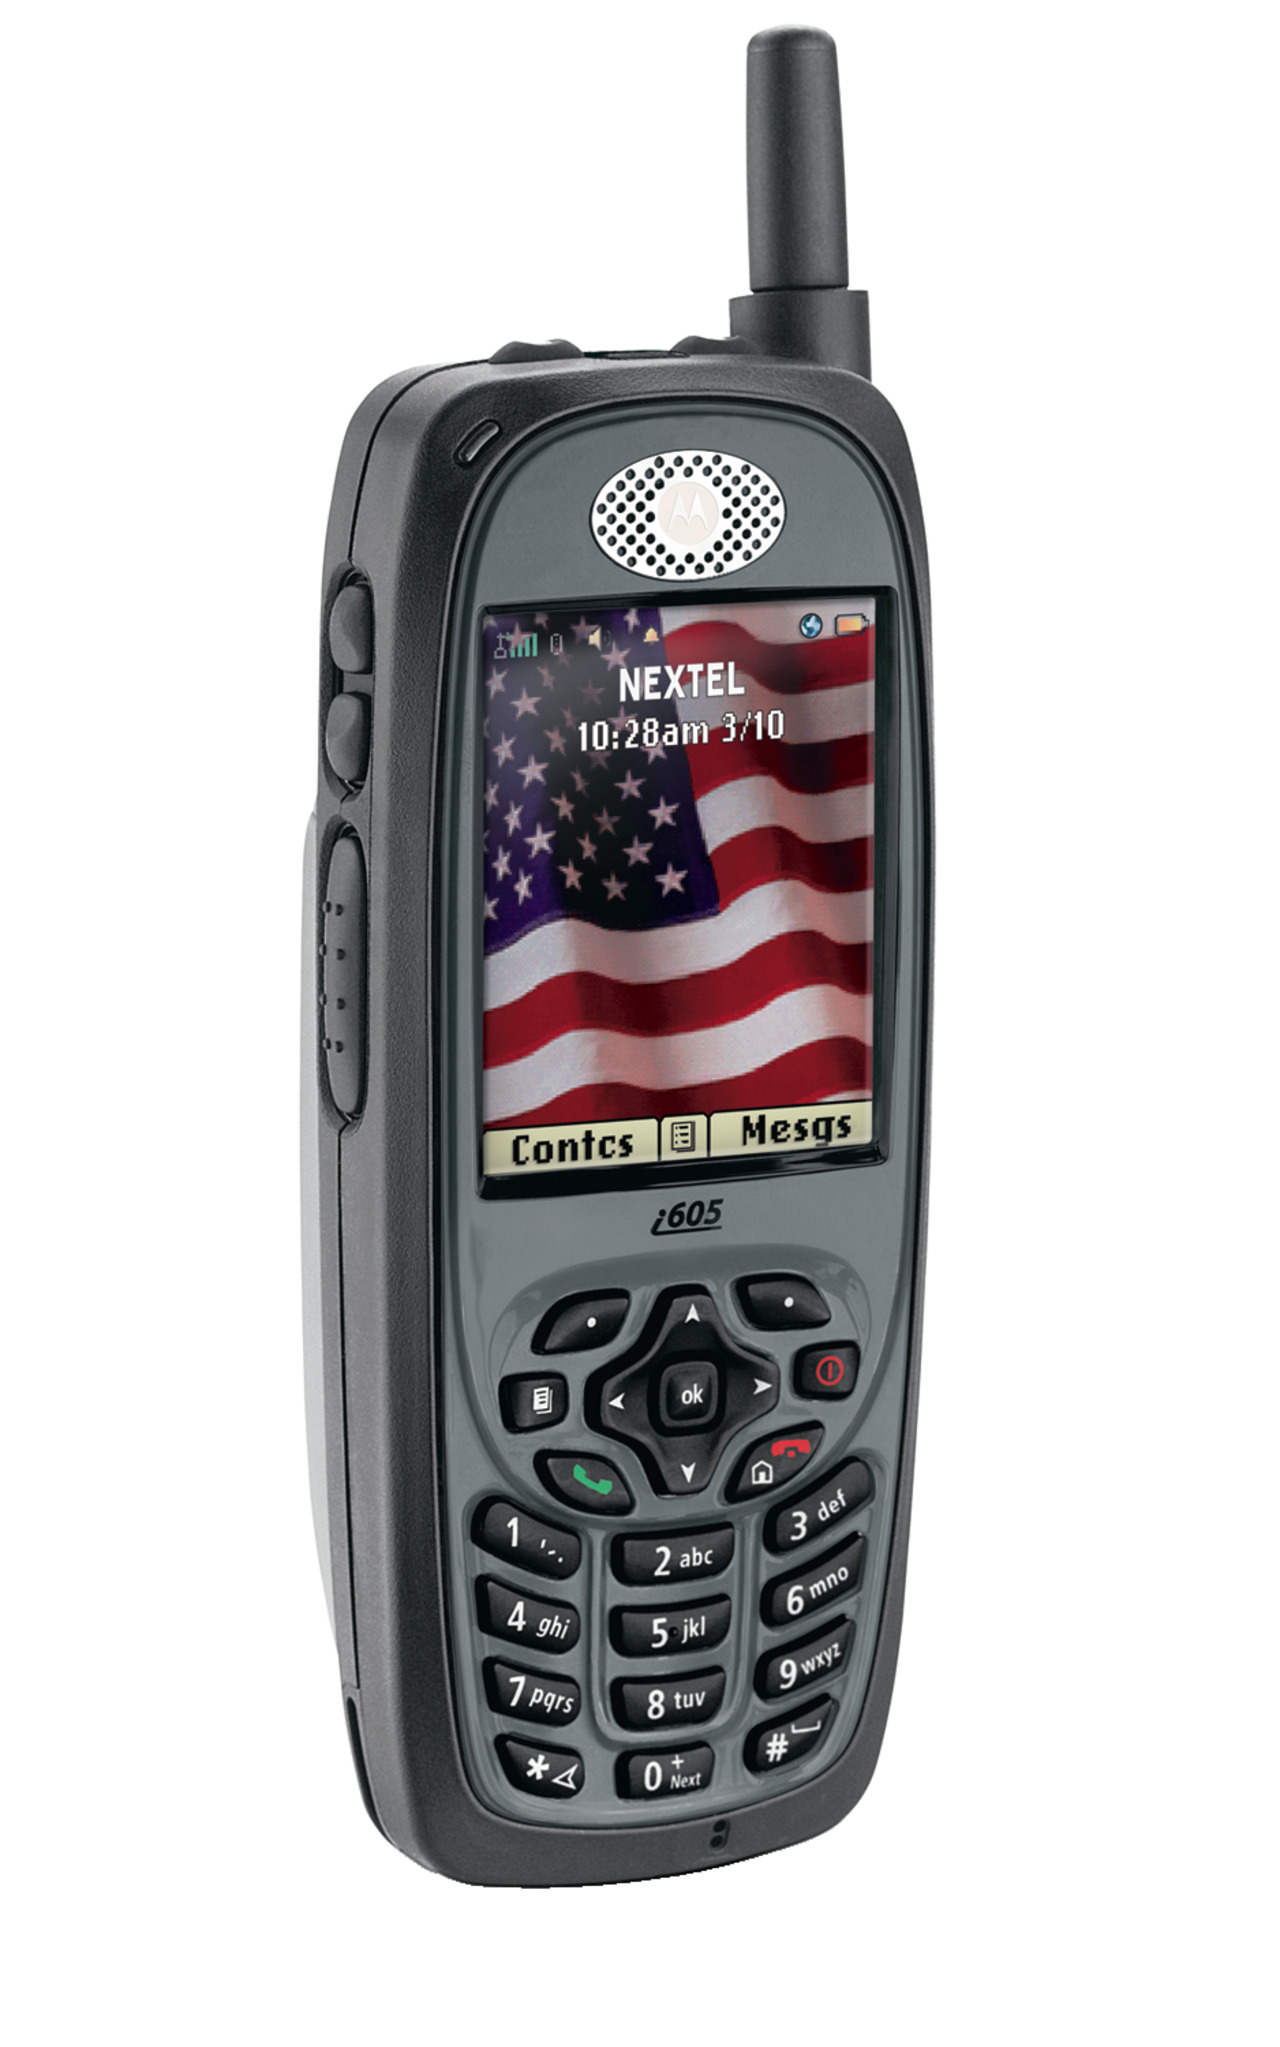 NEXTEL COMMUNICATIONS i605 in Wireless Communications Equipment